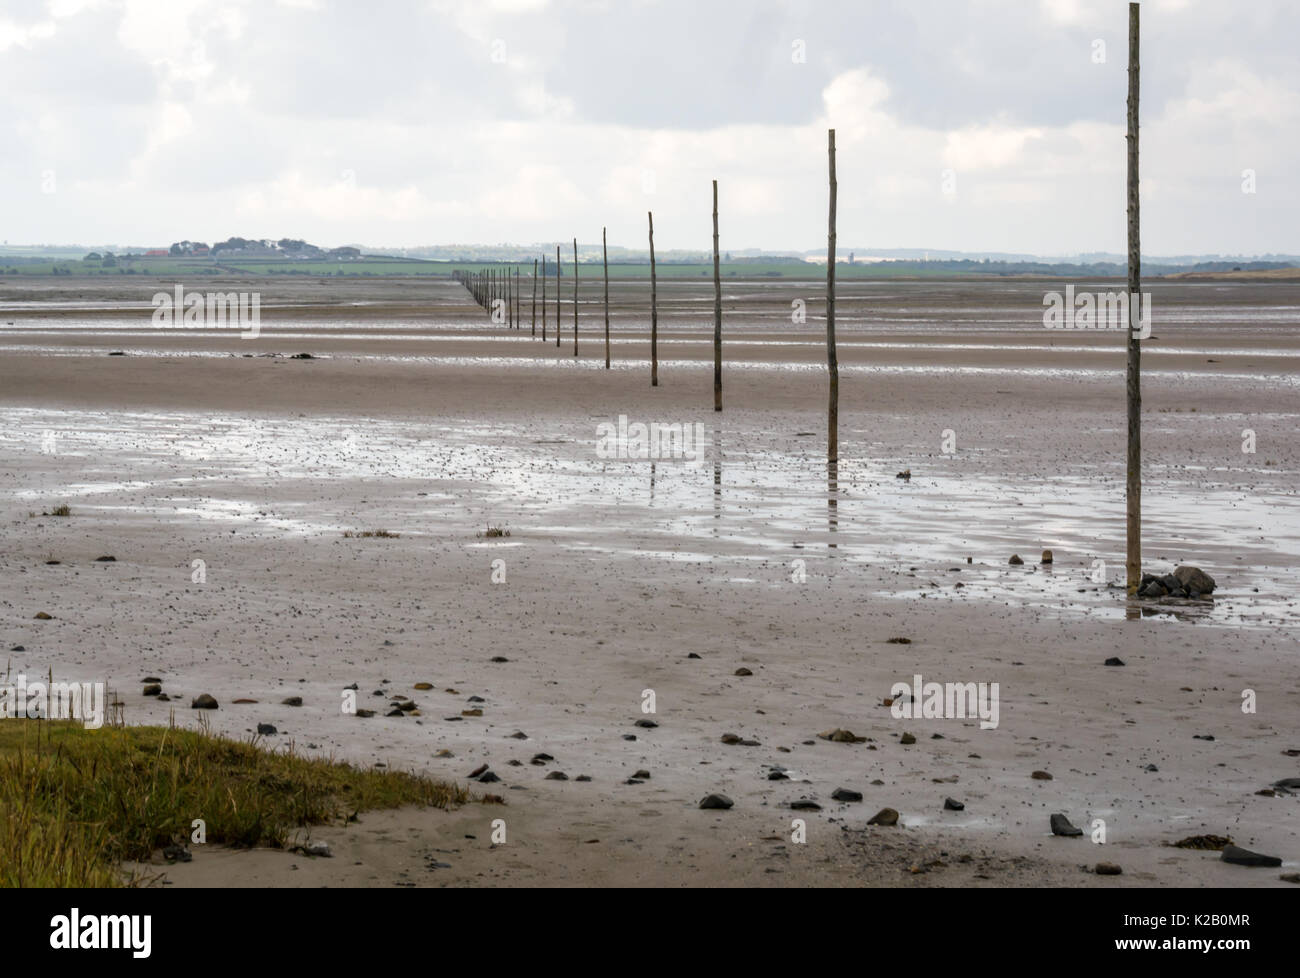 Low tide at Pilgrim's Way, with guide poles in sand to mark route between mainland and Holy Island on Beal Sands, Northumberland, England, UK - Stock Image